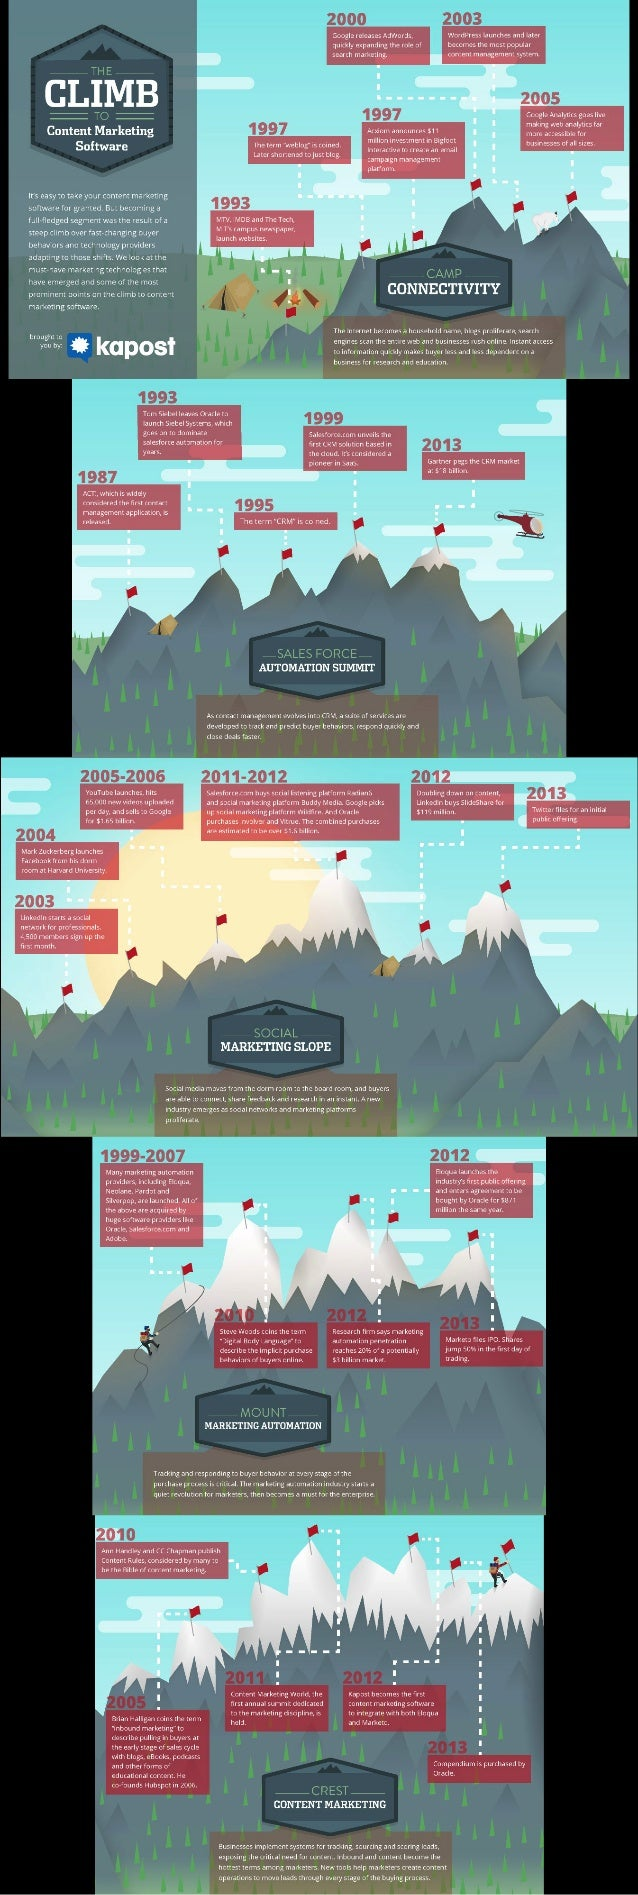 The Climb to Content Marketing Software